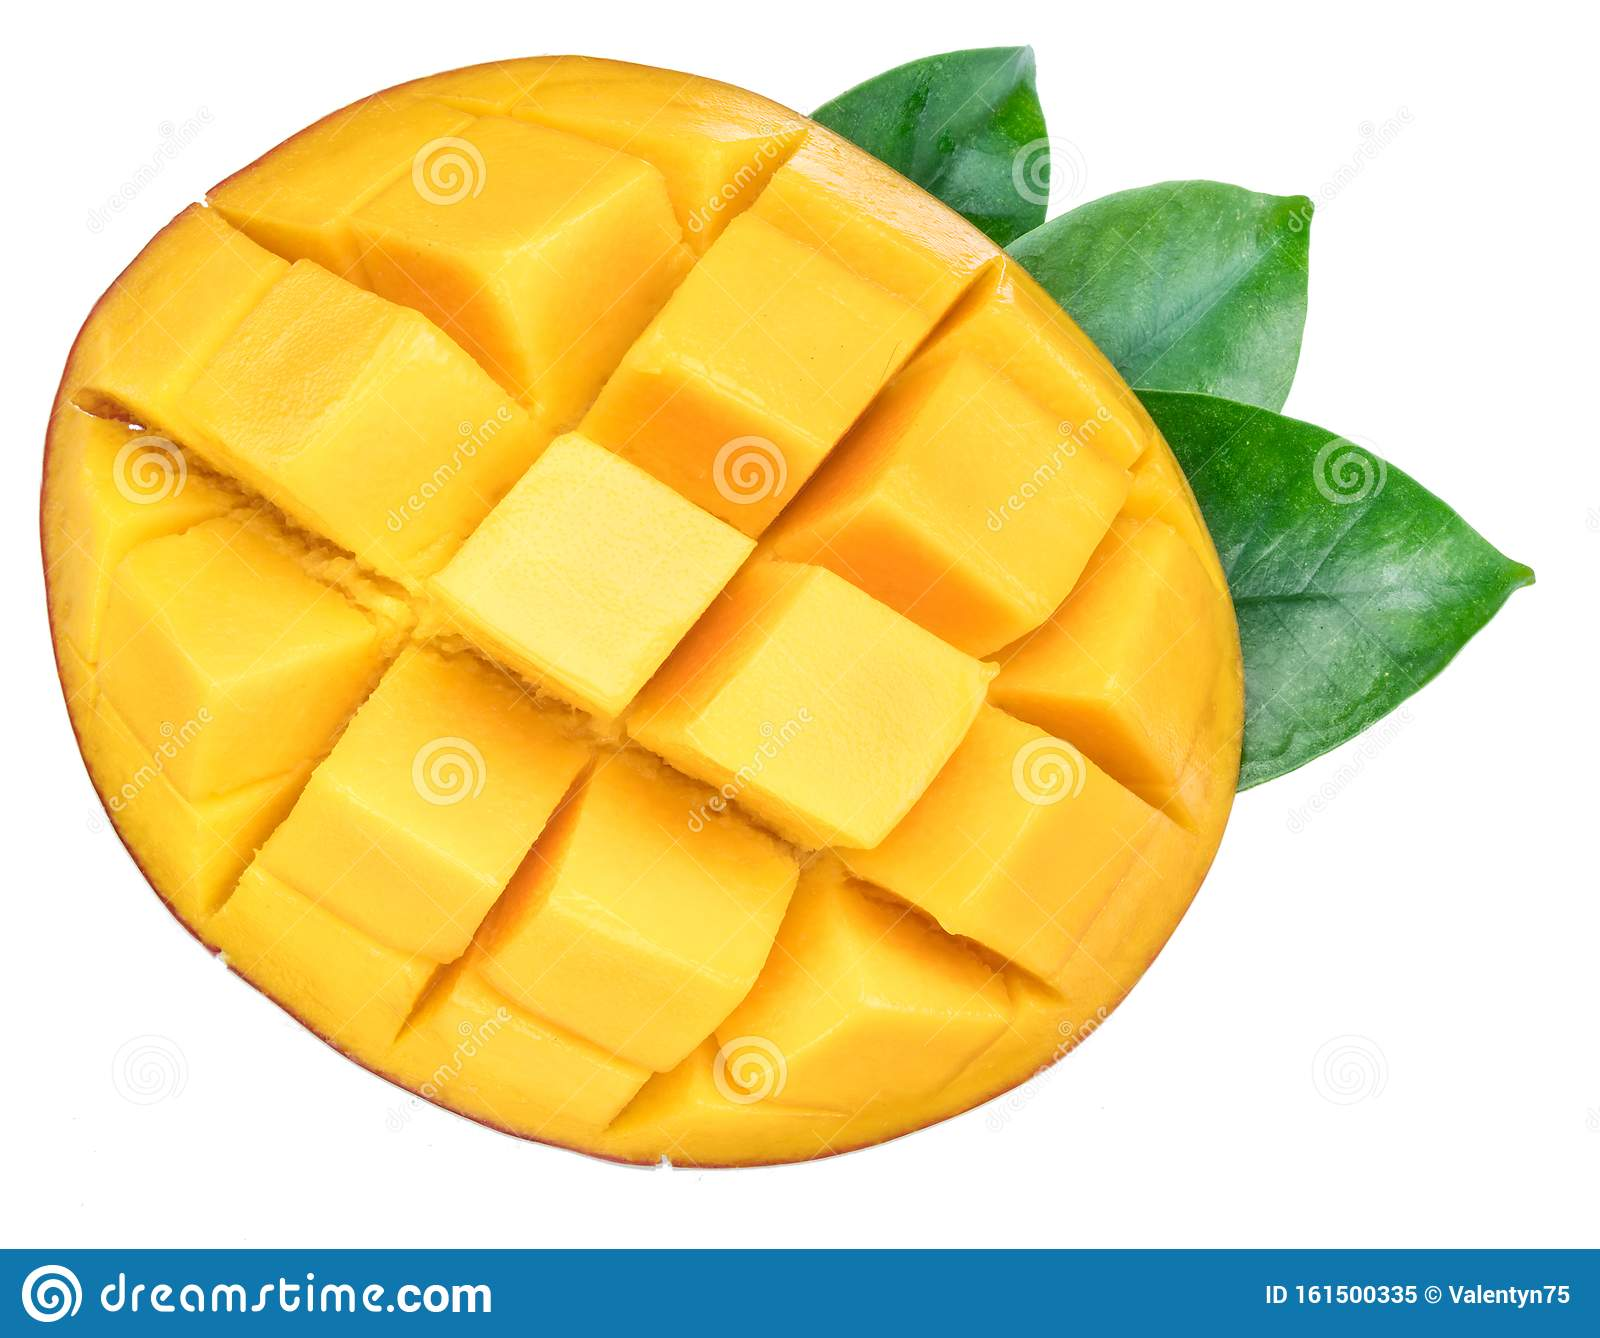 Cross Section Of Mango Fruit Cut Into Cubes With A Leaf